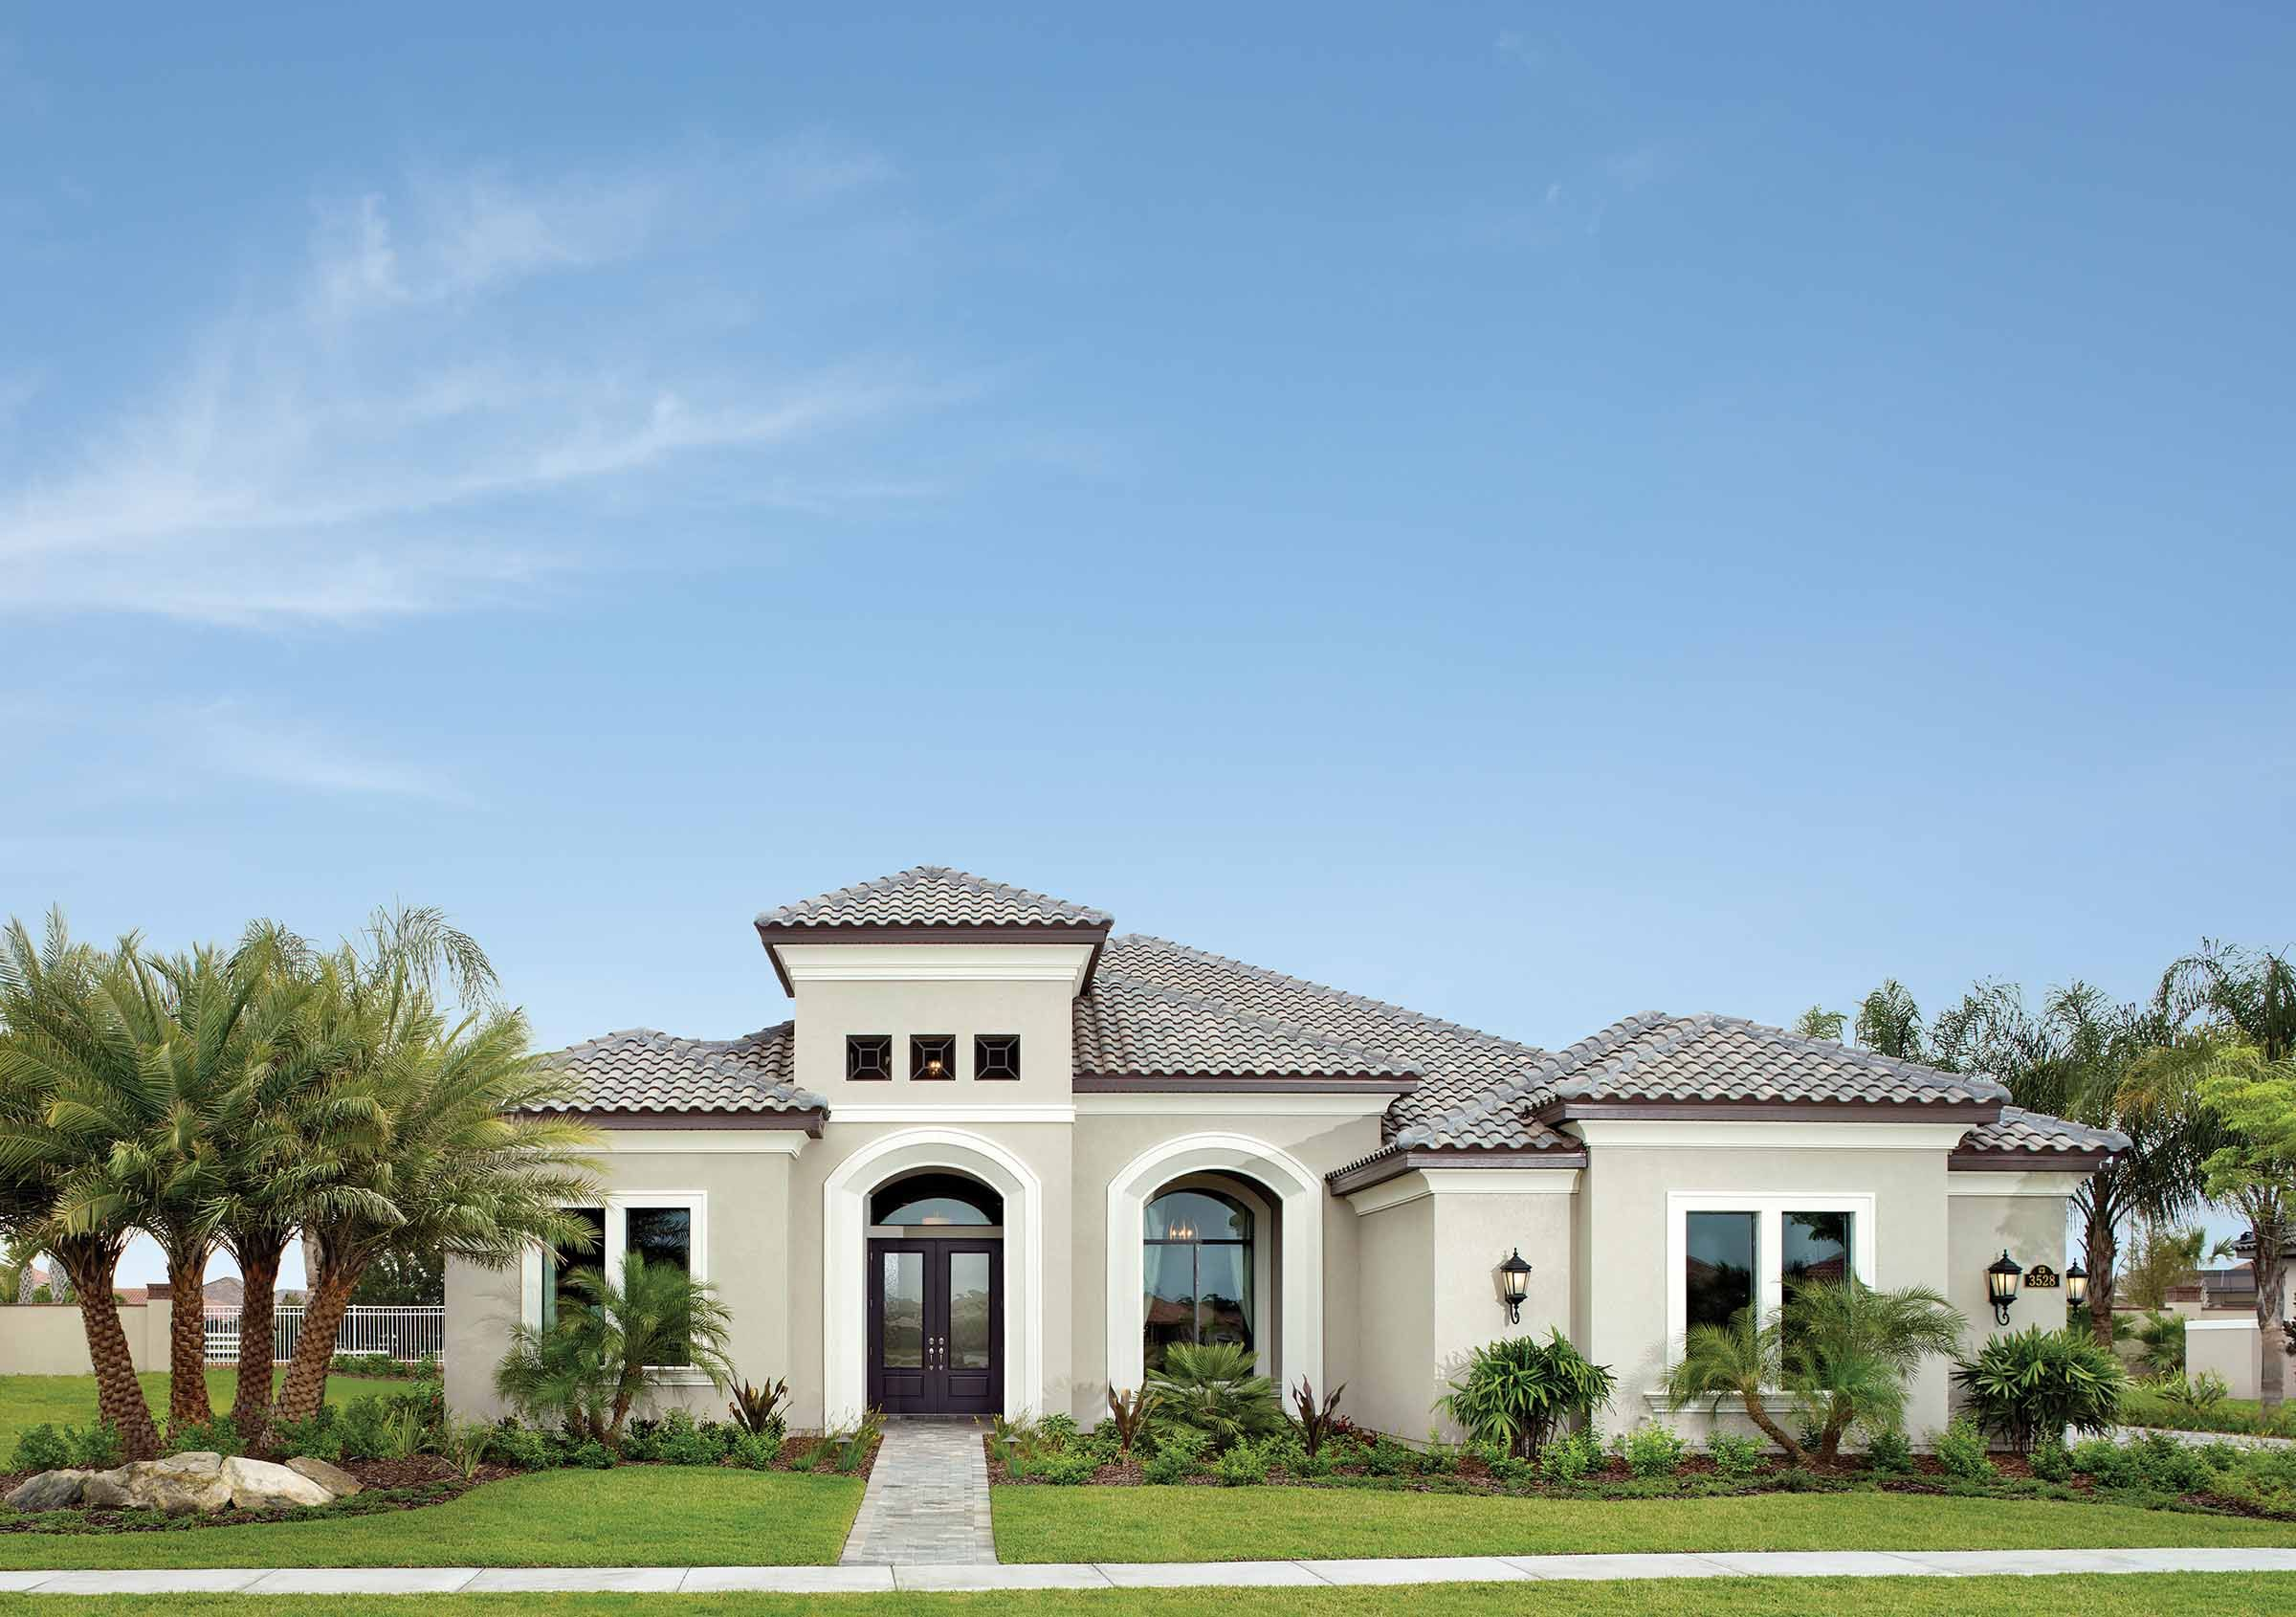 Coquina 1263b In 2019 Stucco House Colors Luxury Homes